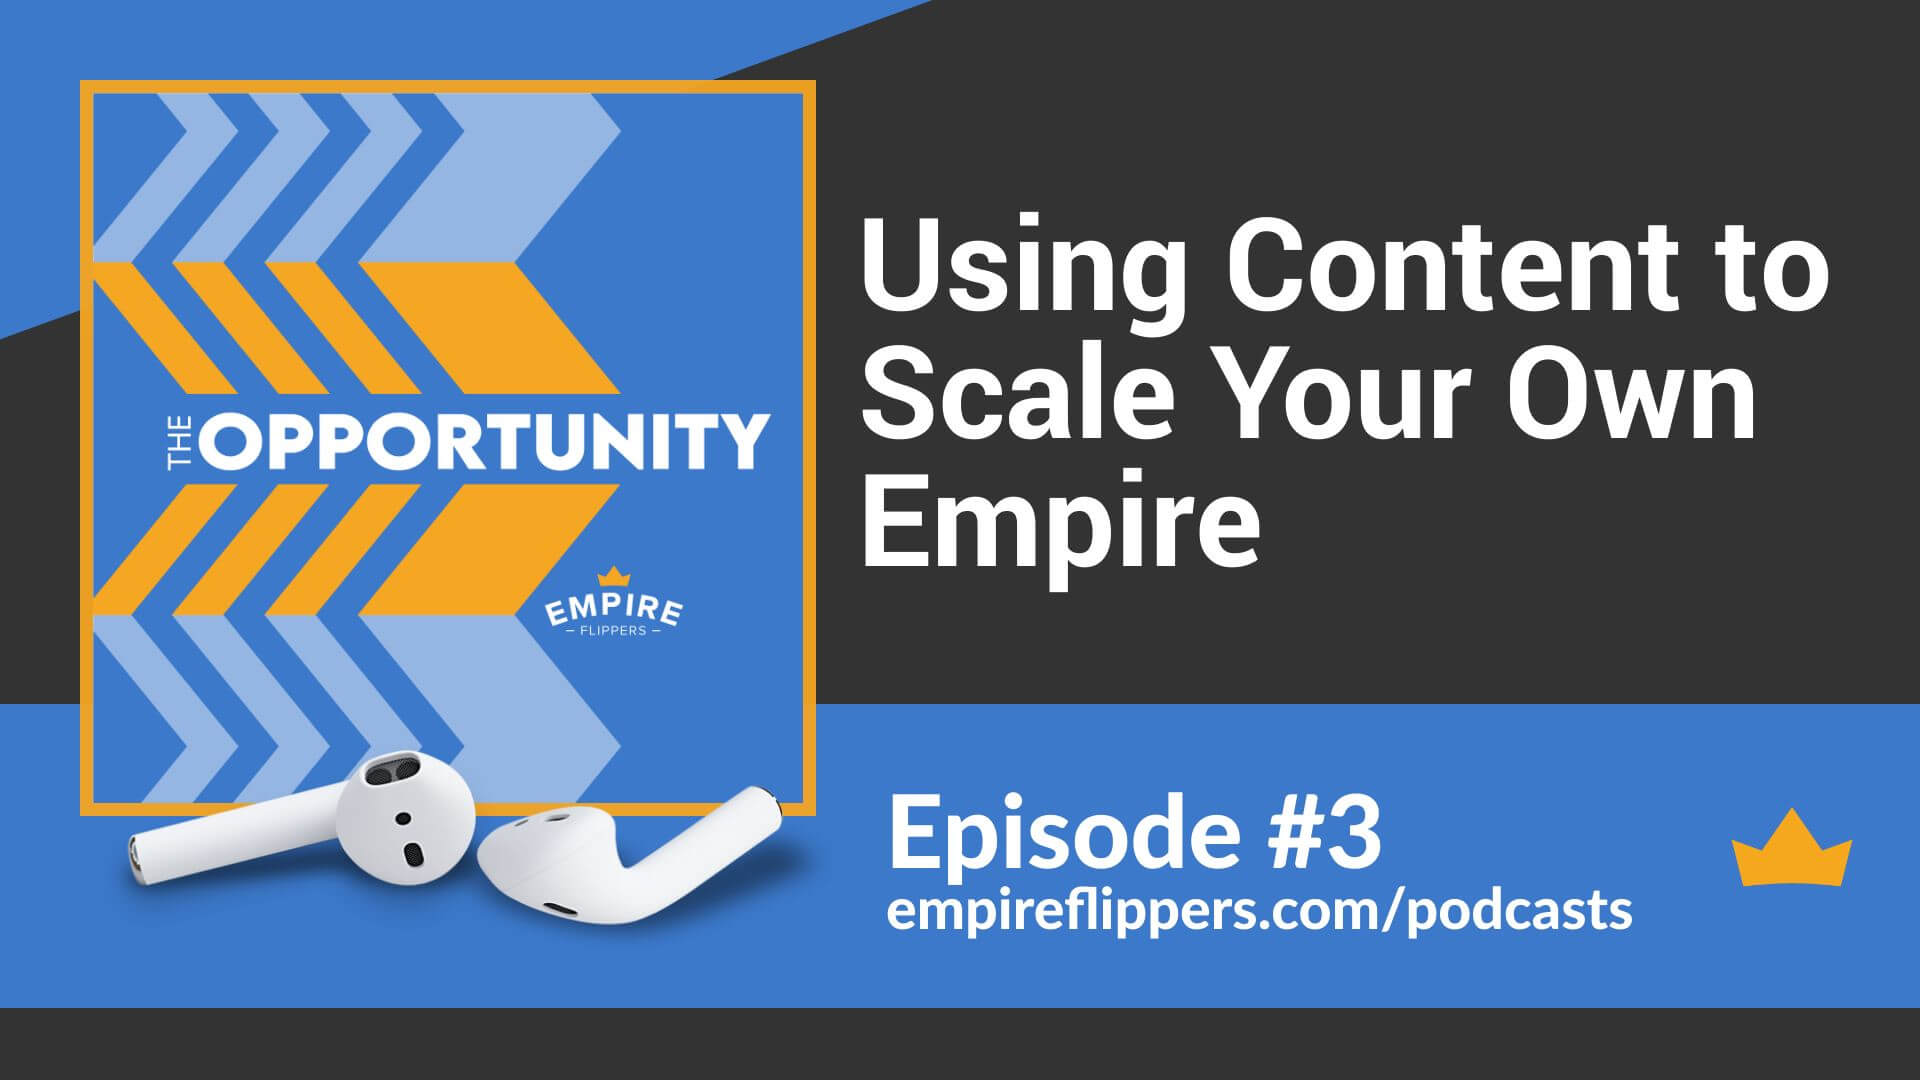 The Opportunity Ep.3: Using Content to Scale Your Own Empire